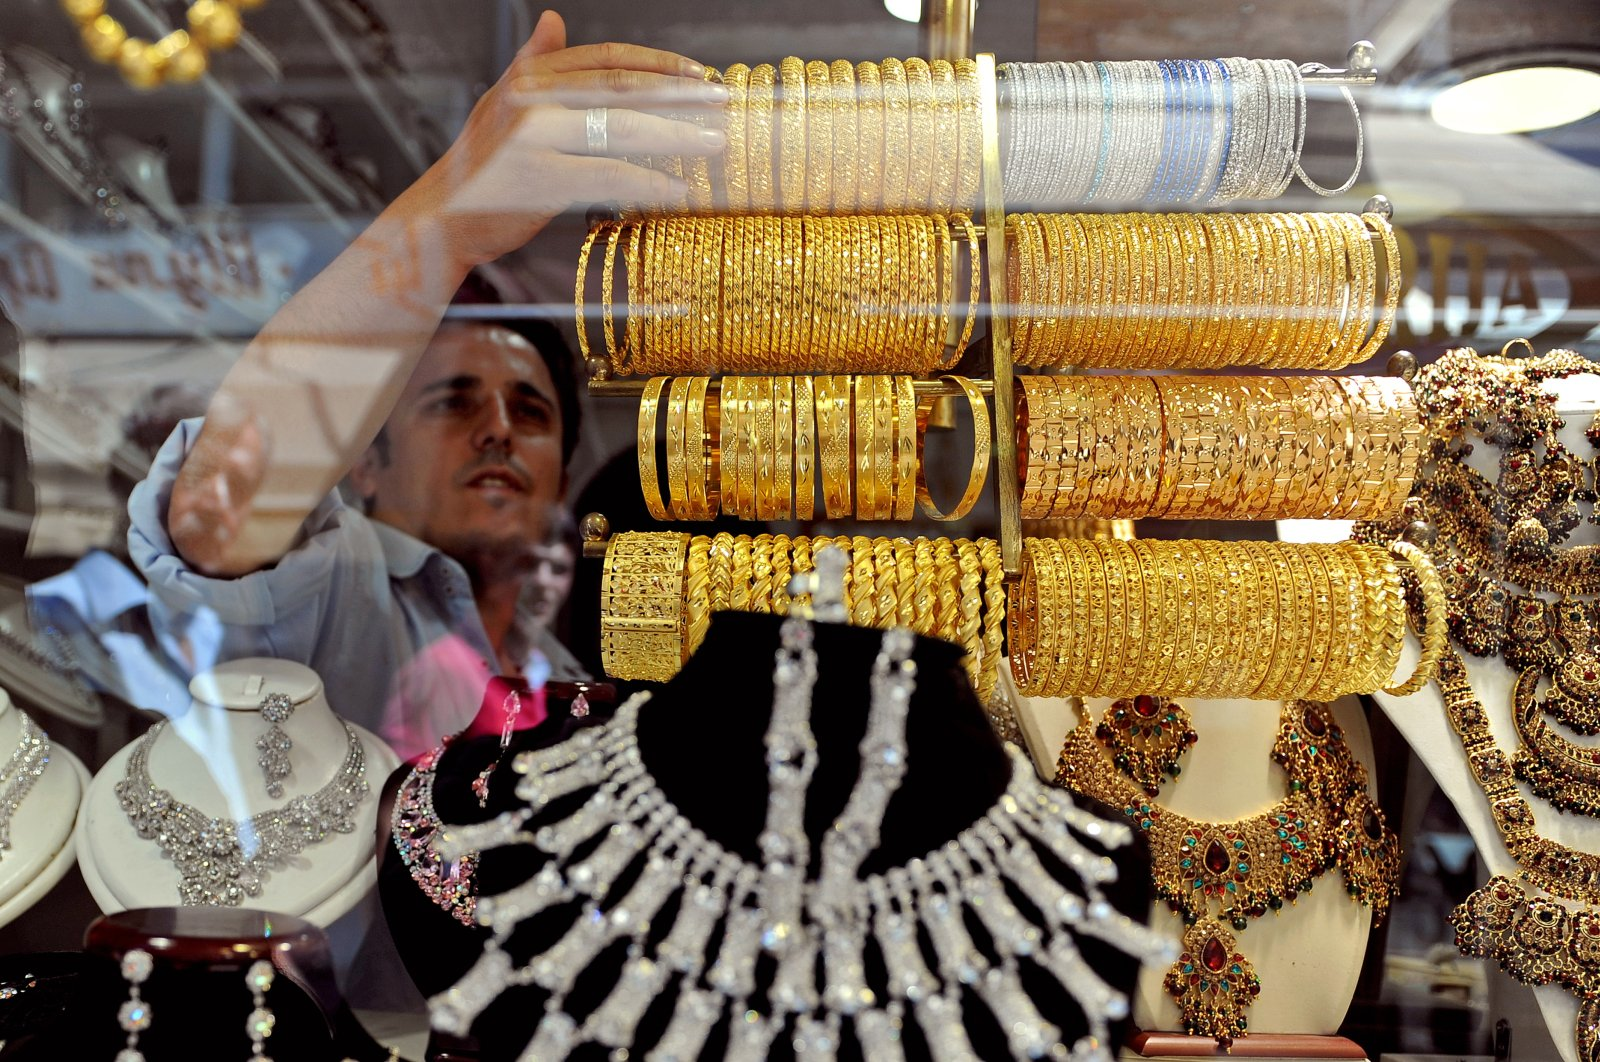 A worker at a jewelry store sets up the showcase in one of the many shops in the old Turkish bazaar in the capital Skopje, North Macedonia, Aug. 19, 2011. (EPA Photo)